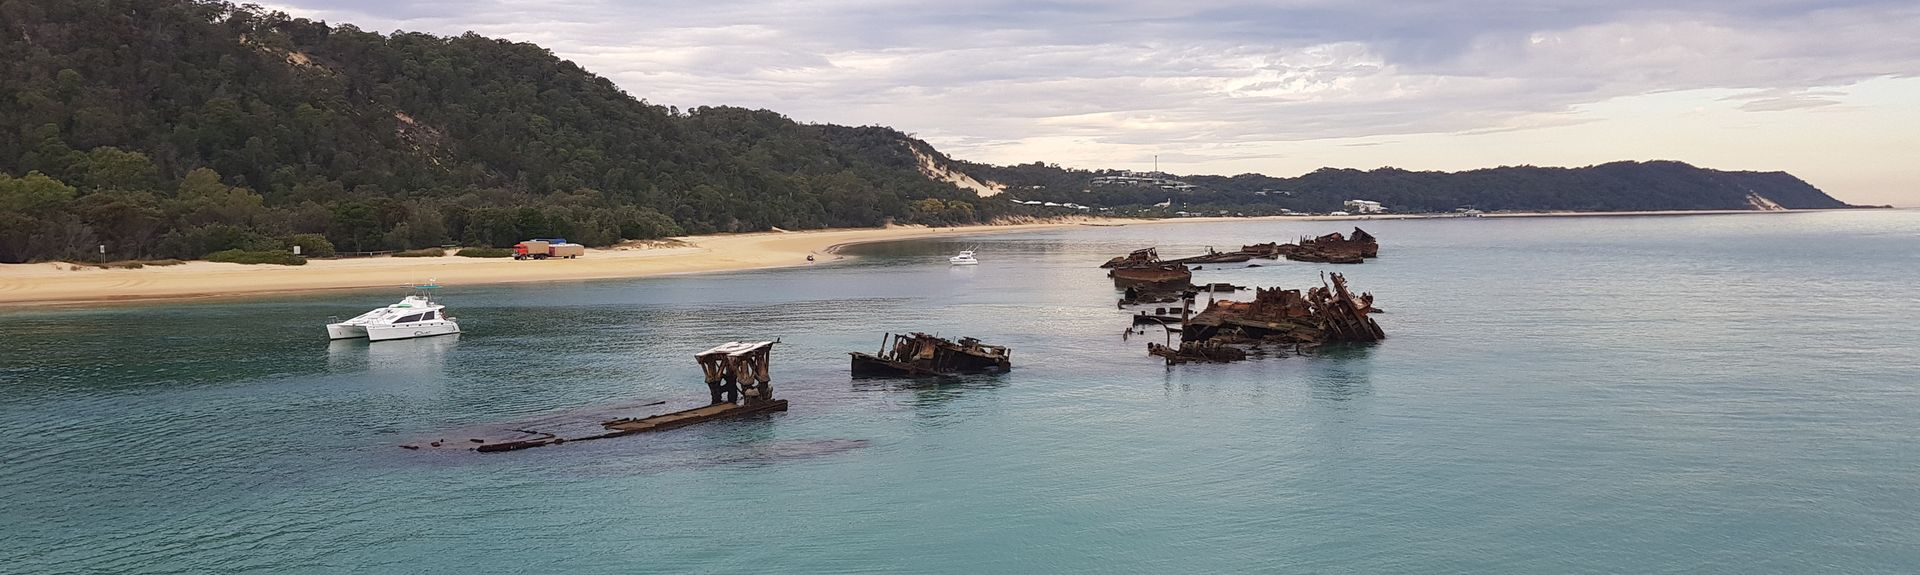 Moreton Island, QLD holiday accommodation for 2019 | HomeAway